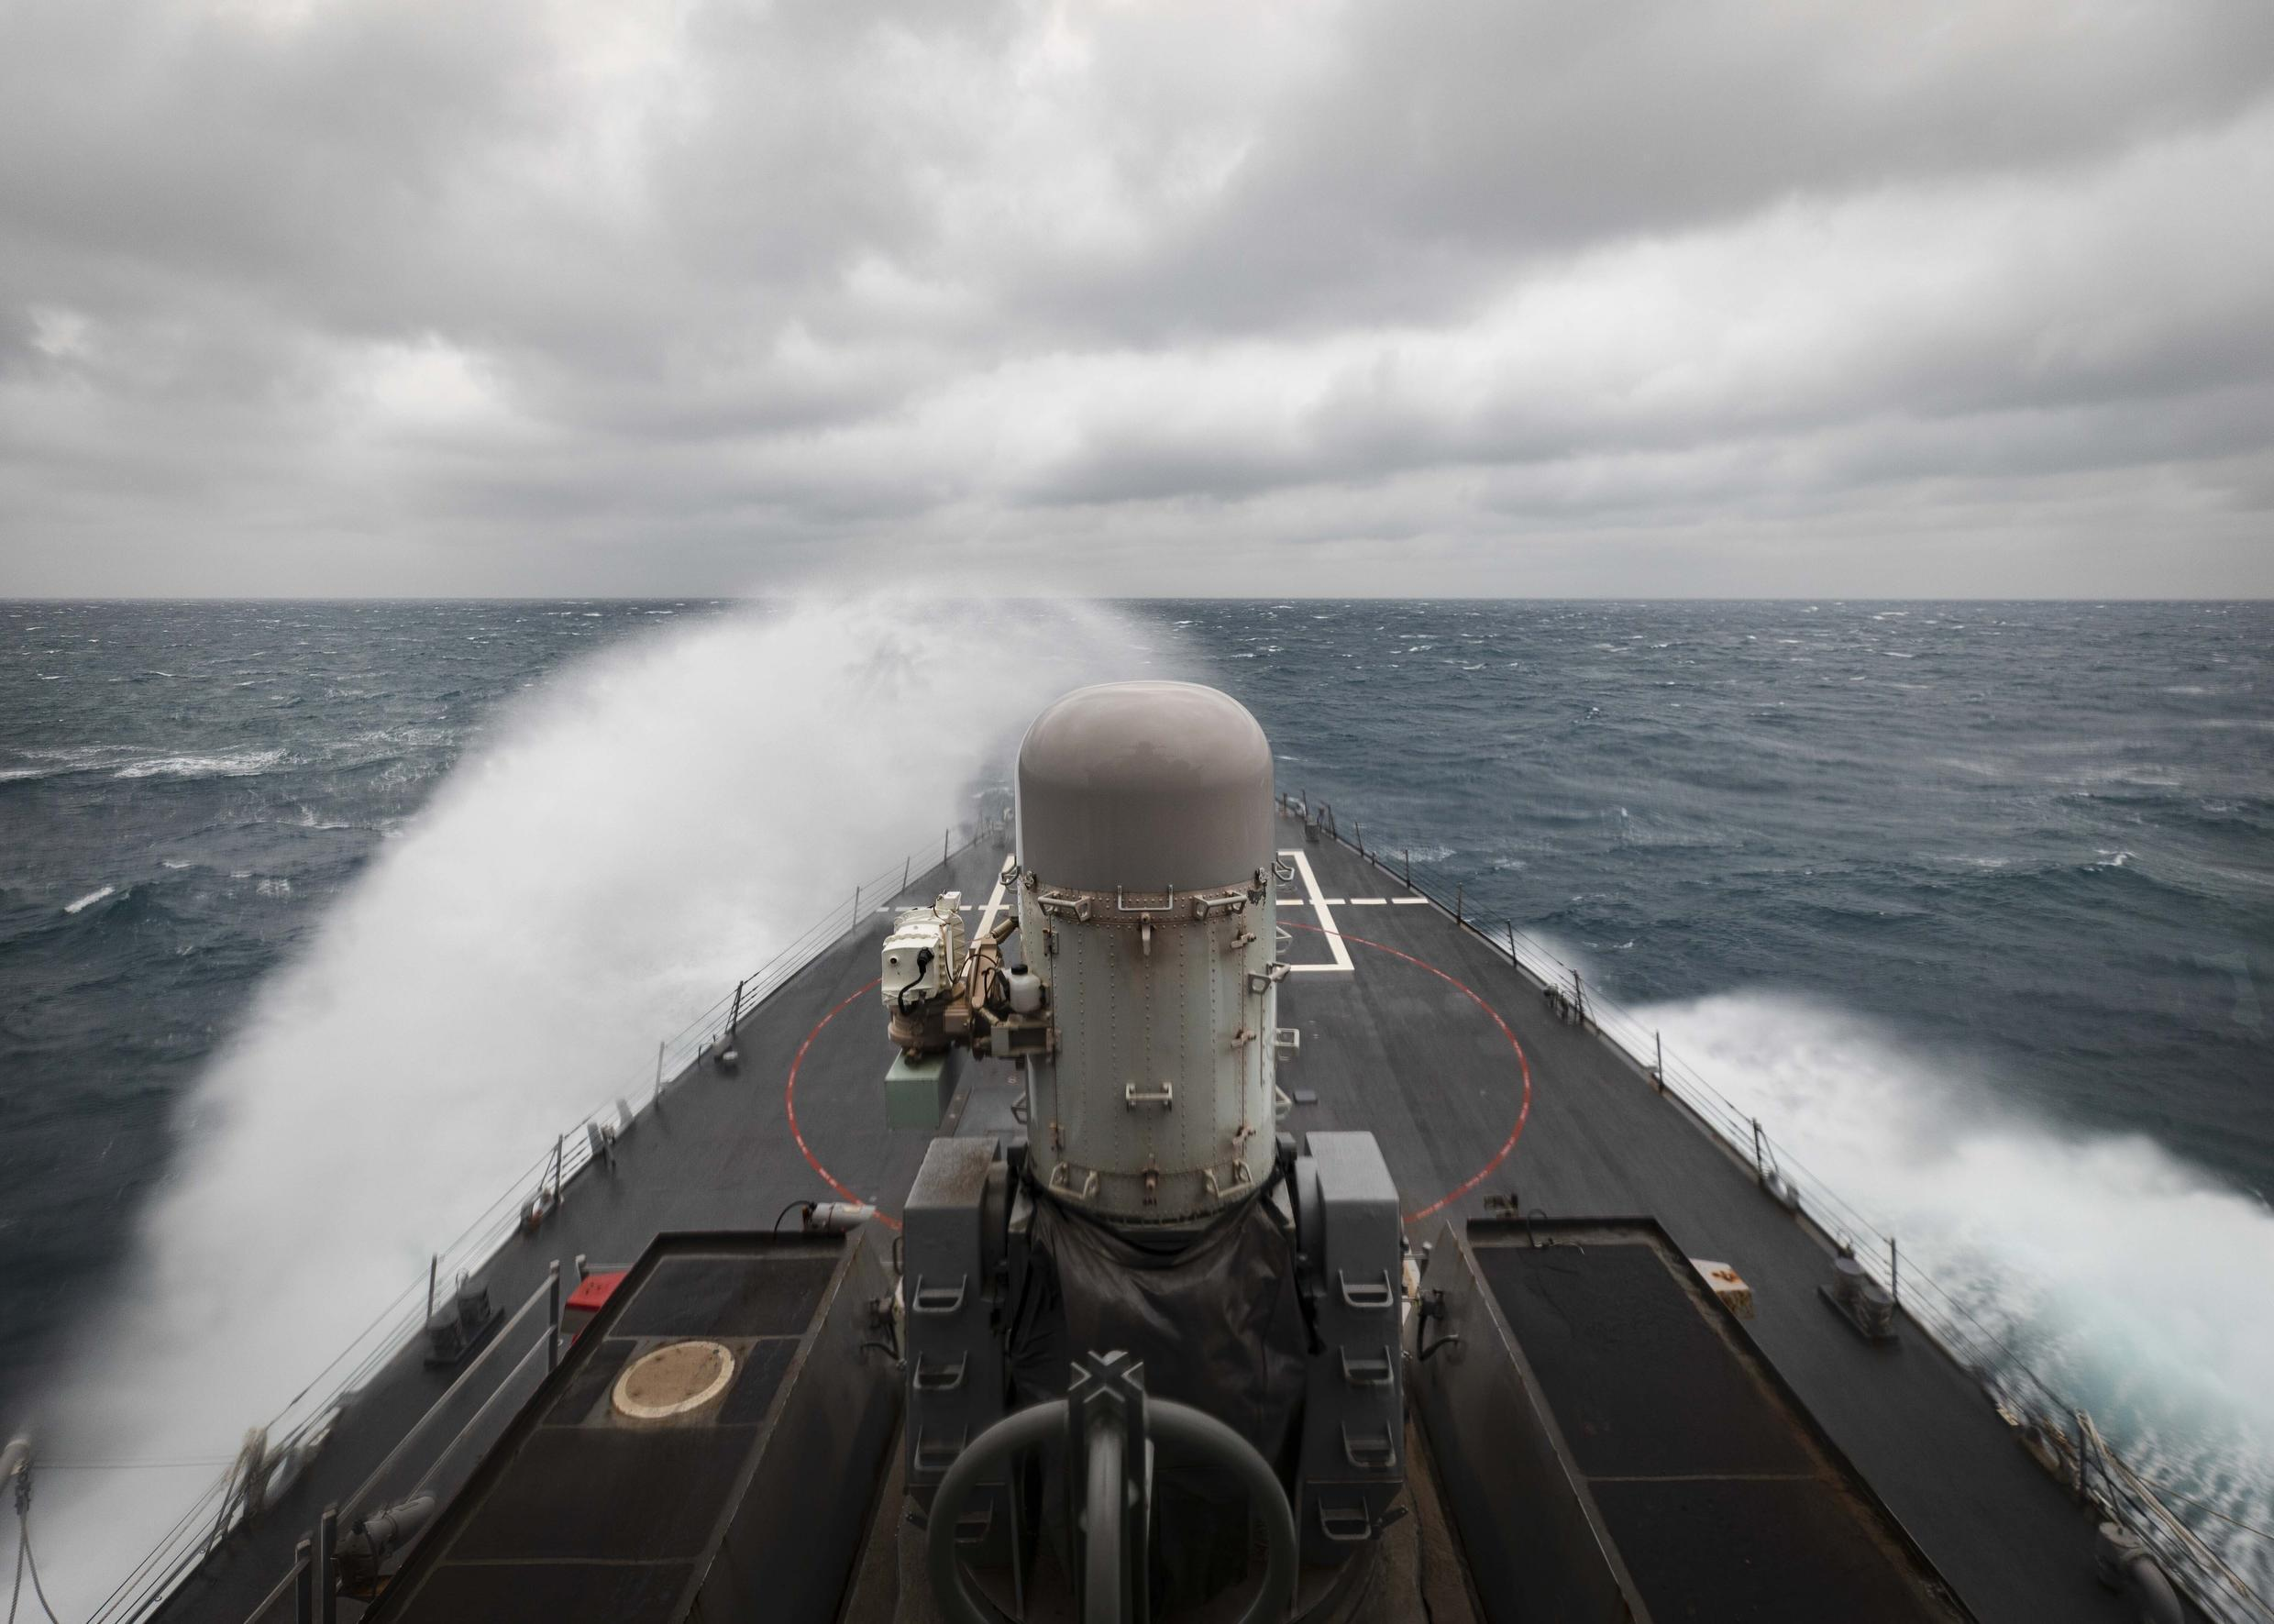 US destroyer USS John S. McCain at the Taiwan Strait, Wednesday, Dec. 30, 2020